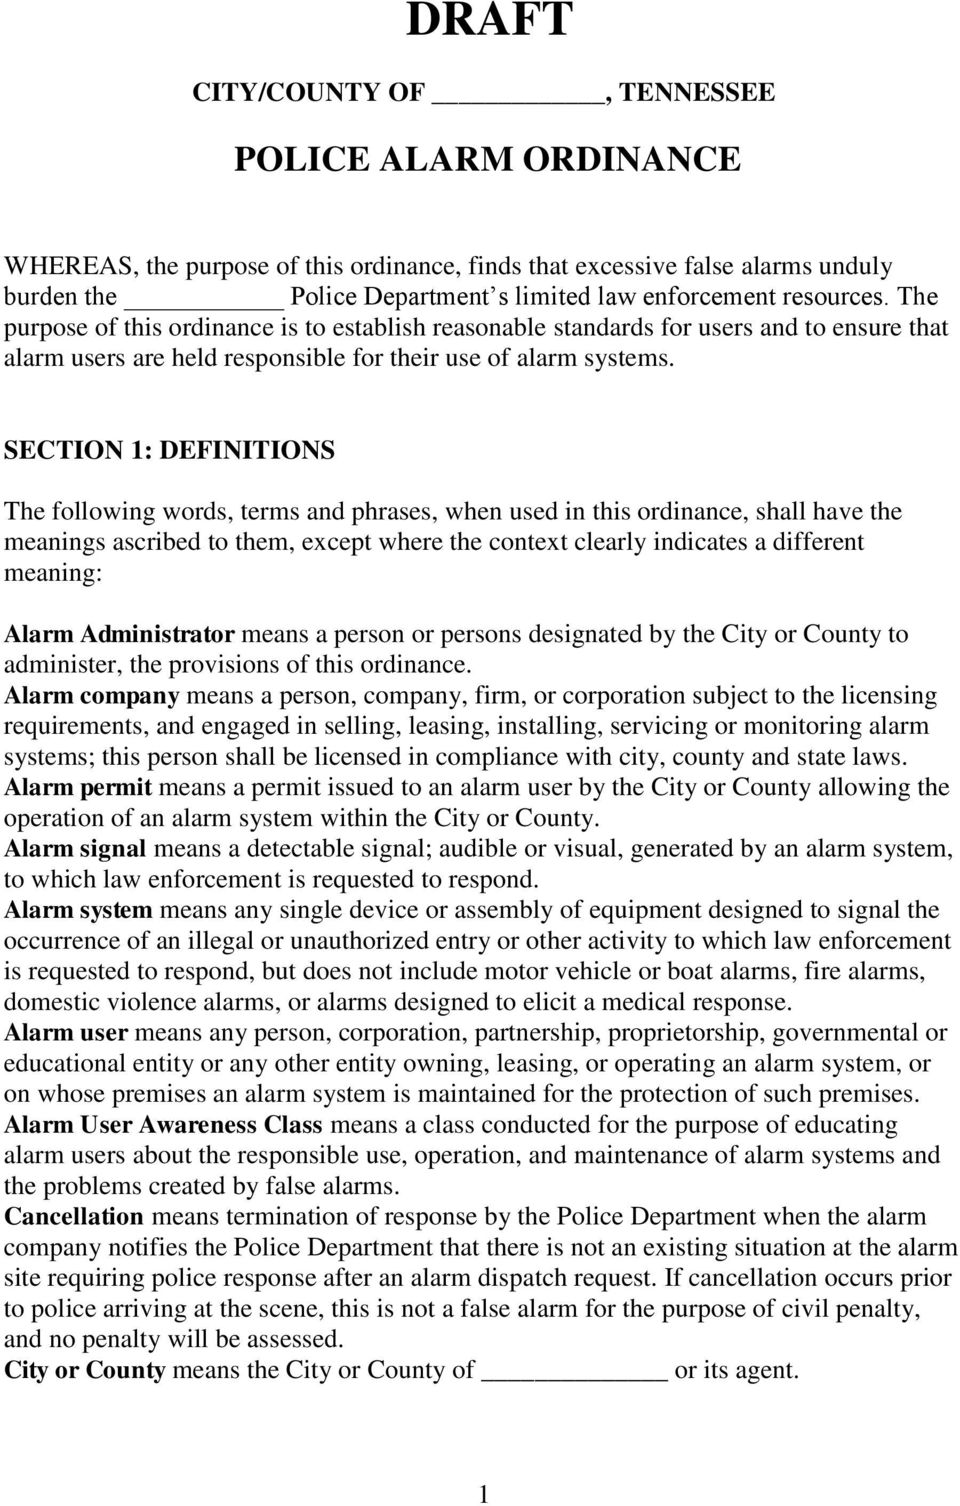 SECTION 1: DEFINITIONS The following words, terms and phrases, when used in this ordinance, shall have the meanings ascribed to them, except where the context clearly indicates a different meaning: